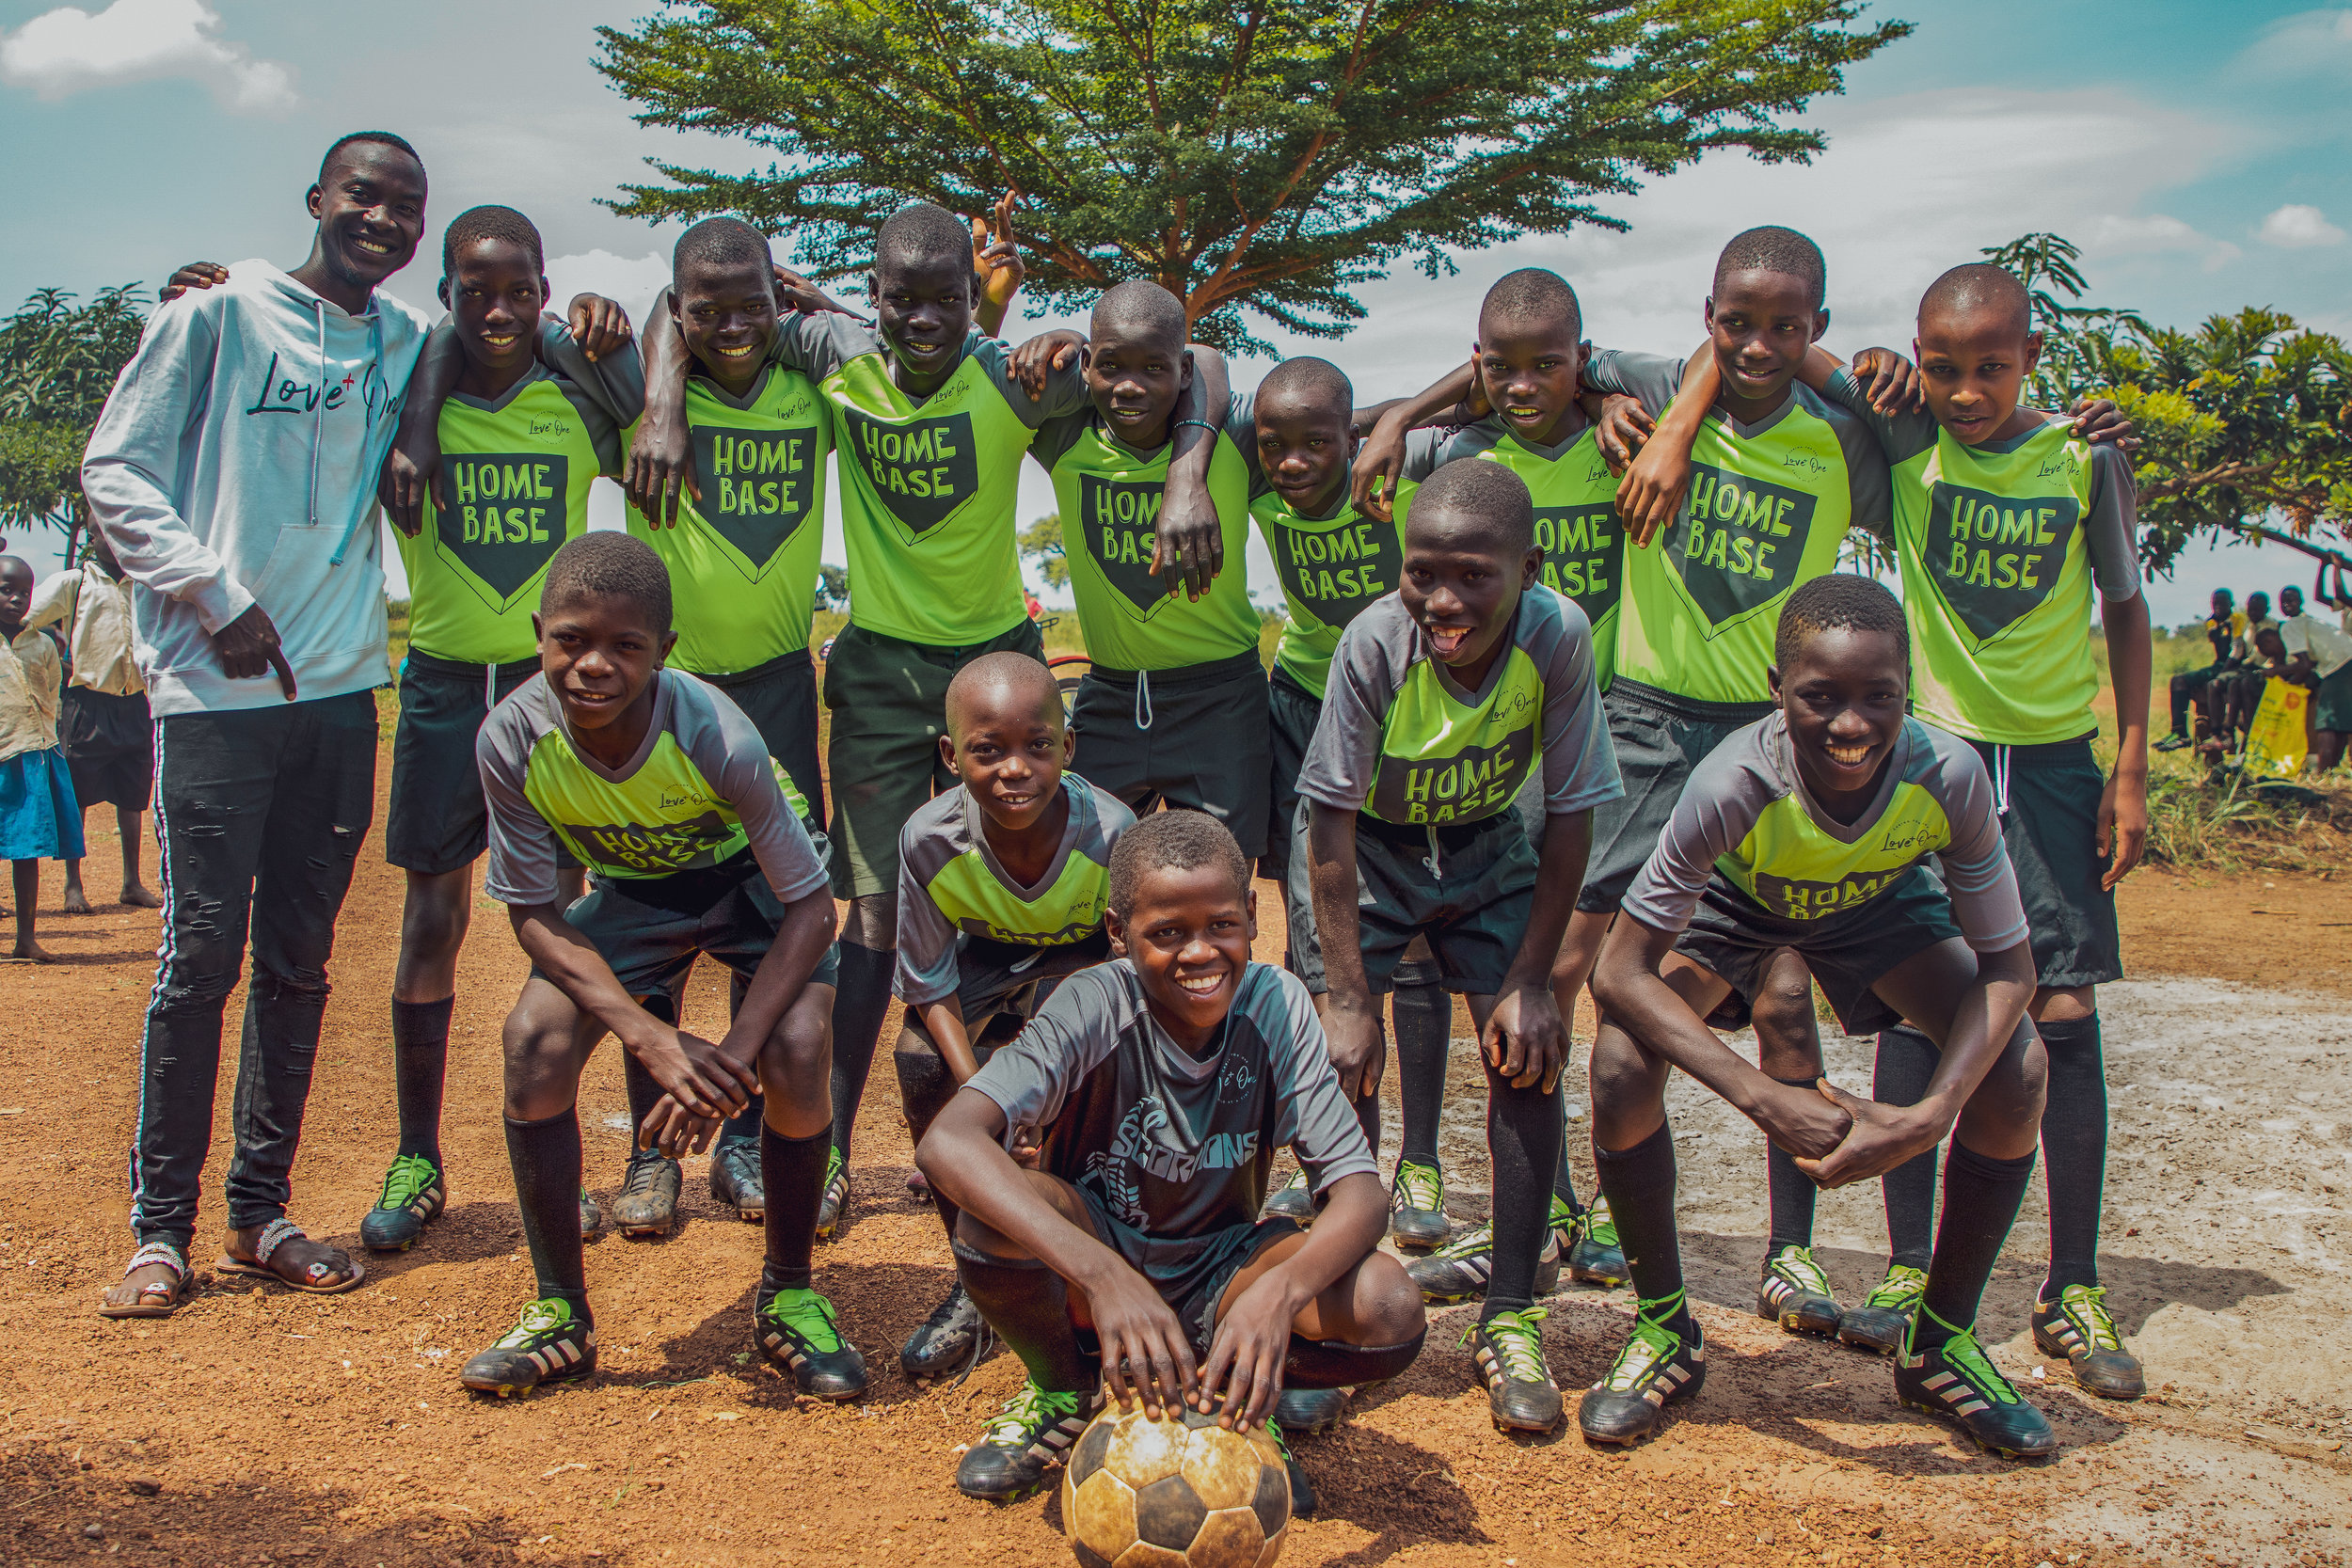 There are 9 soccer teams in the soccer program. Coach Jude teaches these children not only about the game, but also about Jesus' love for each and every one of them. -